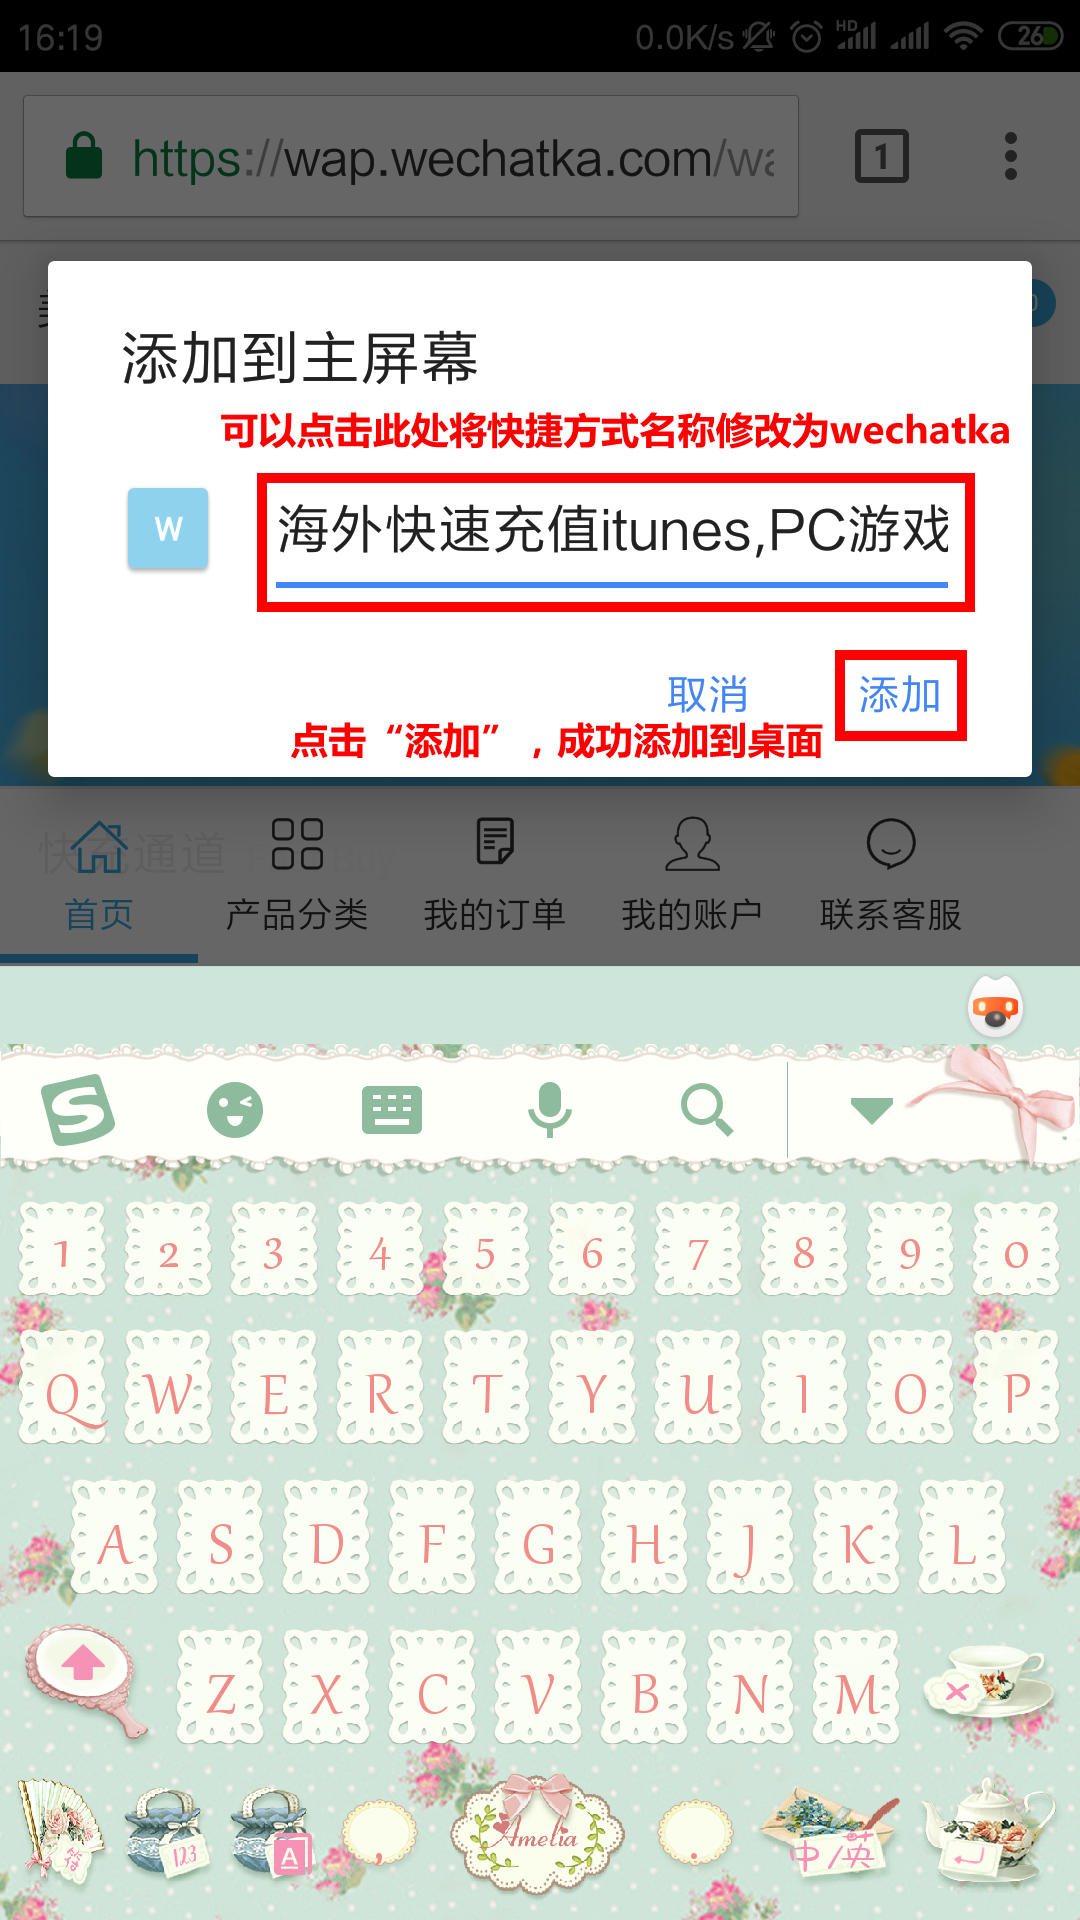 Android--Google--wechatka (3).png